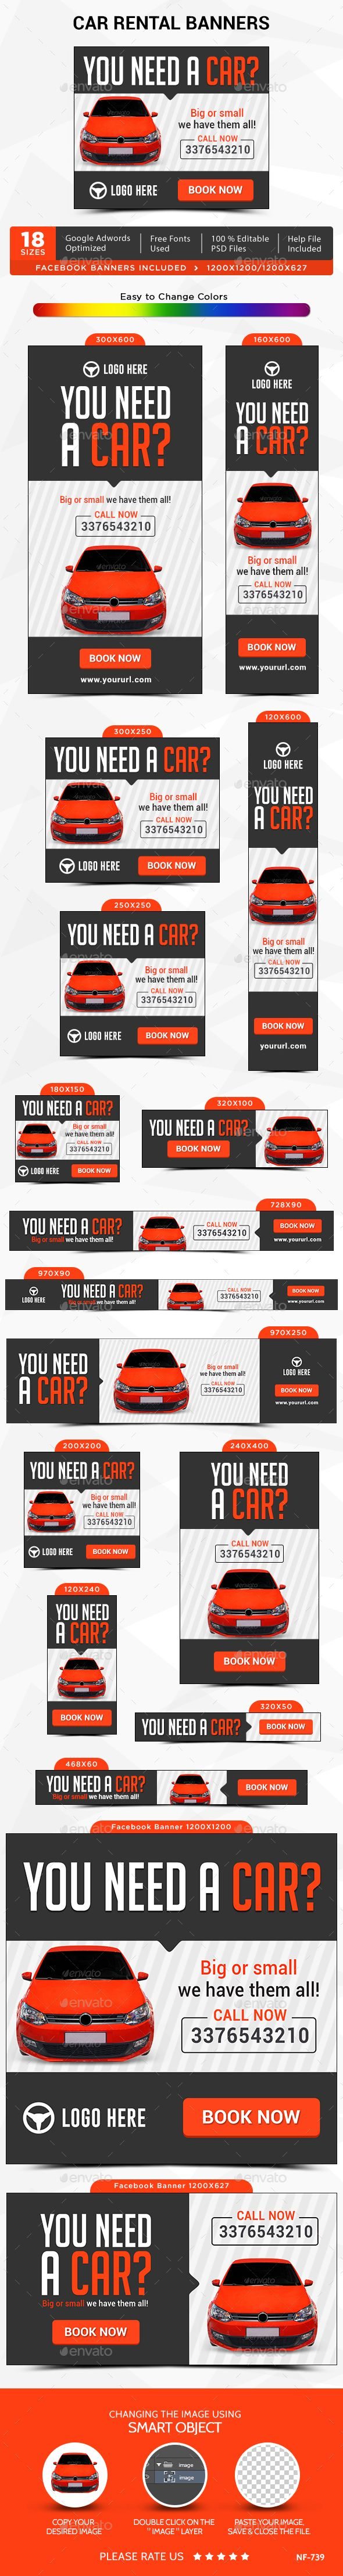 Car Rental Banner & Ads Web Template PSD. Download here: http://graphicriver.net/item/car-rental-banners/13341199?s_rank=1776&ref=yinkira